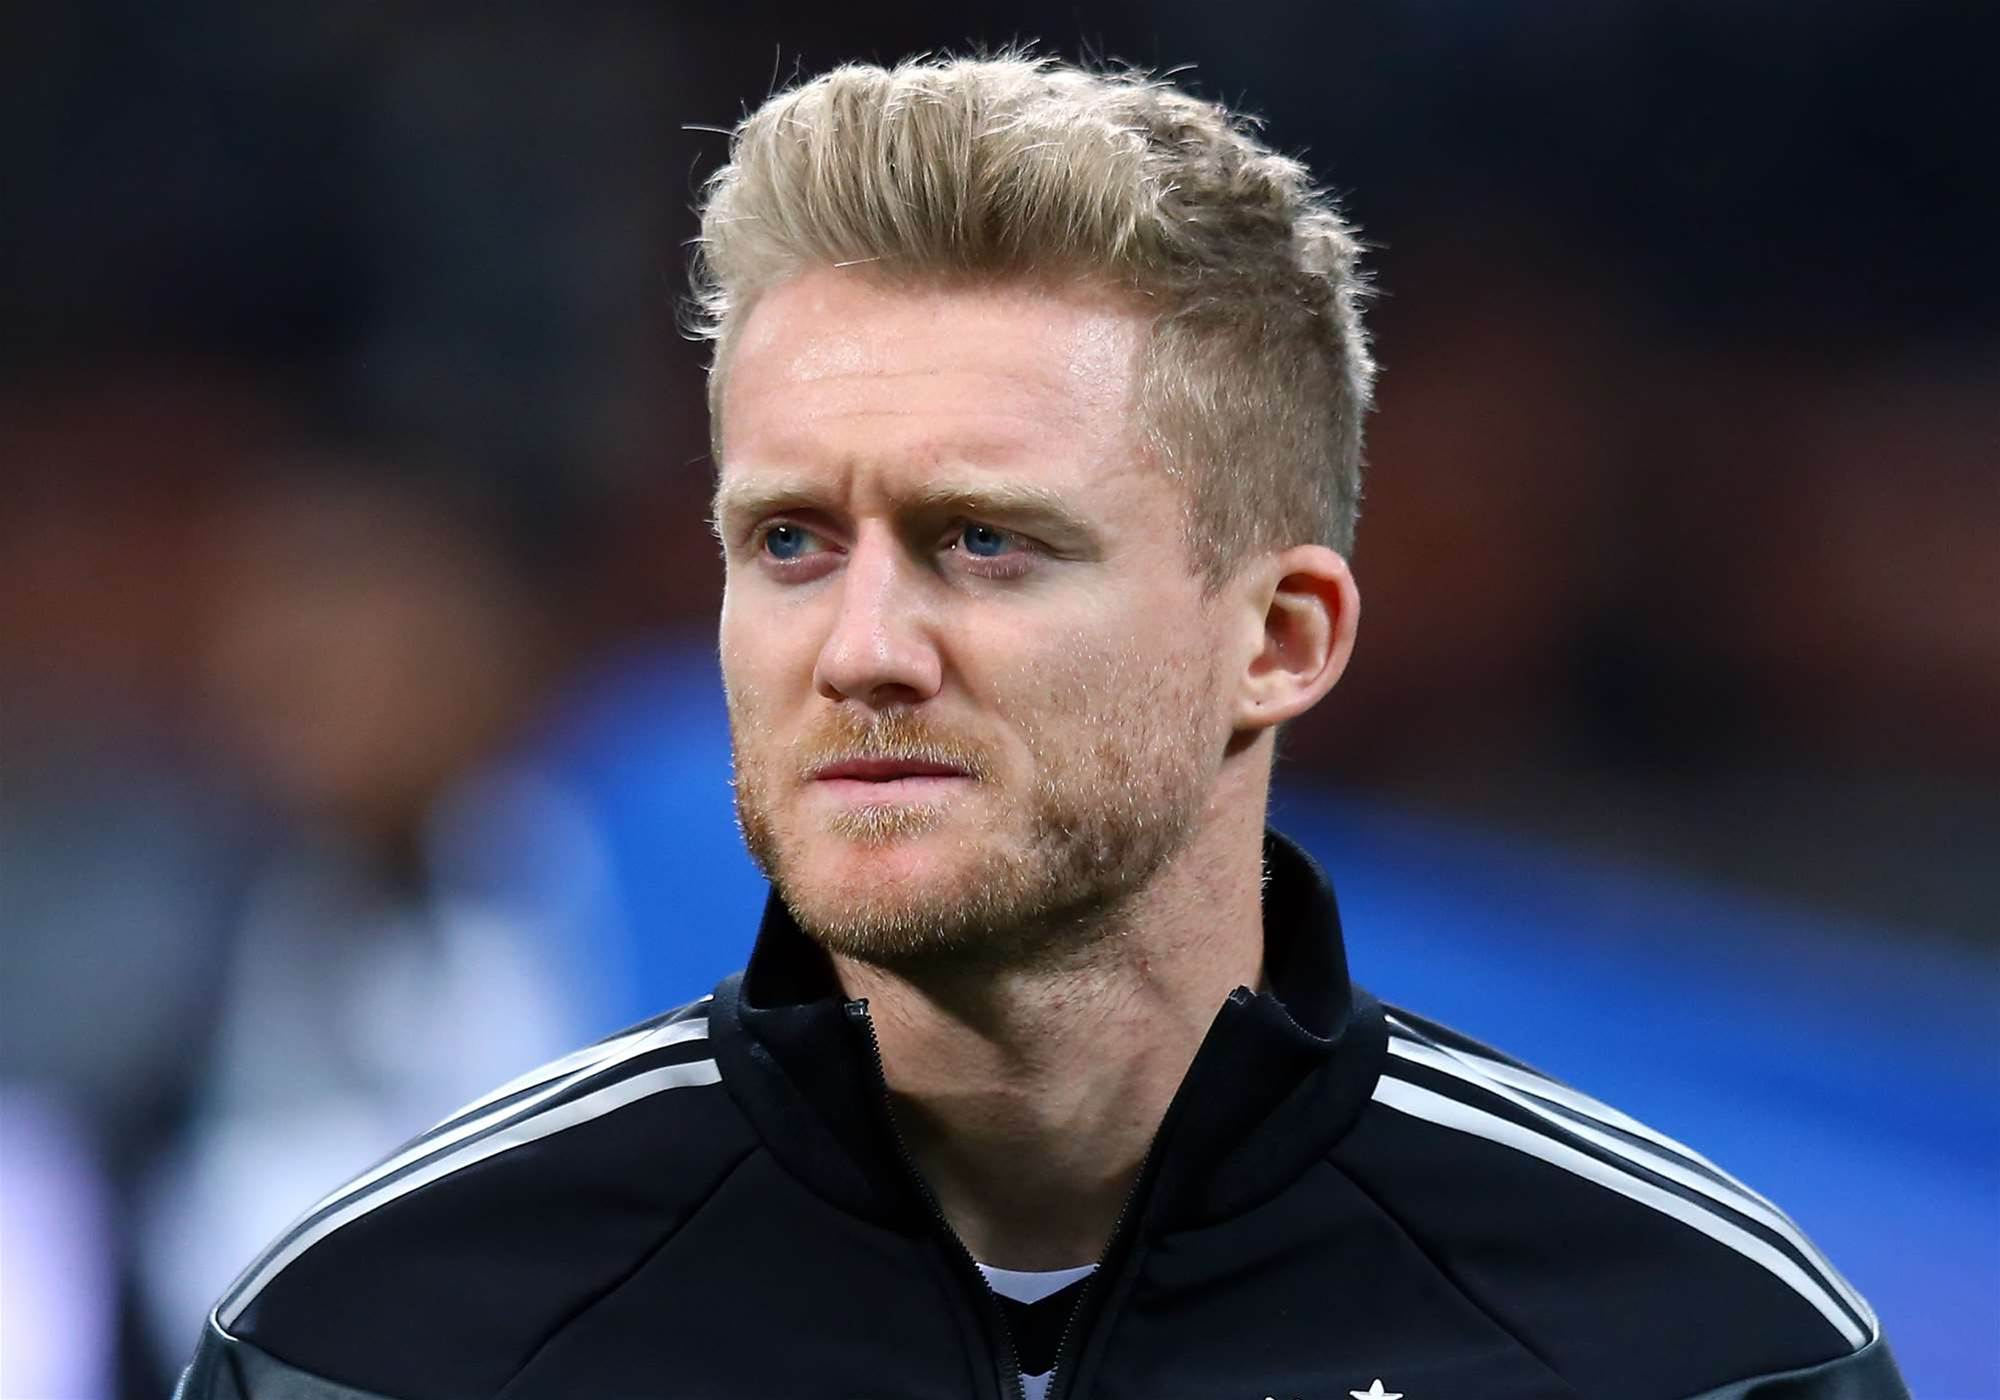 Schurrle doubts Rooney would make Germany team